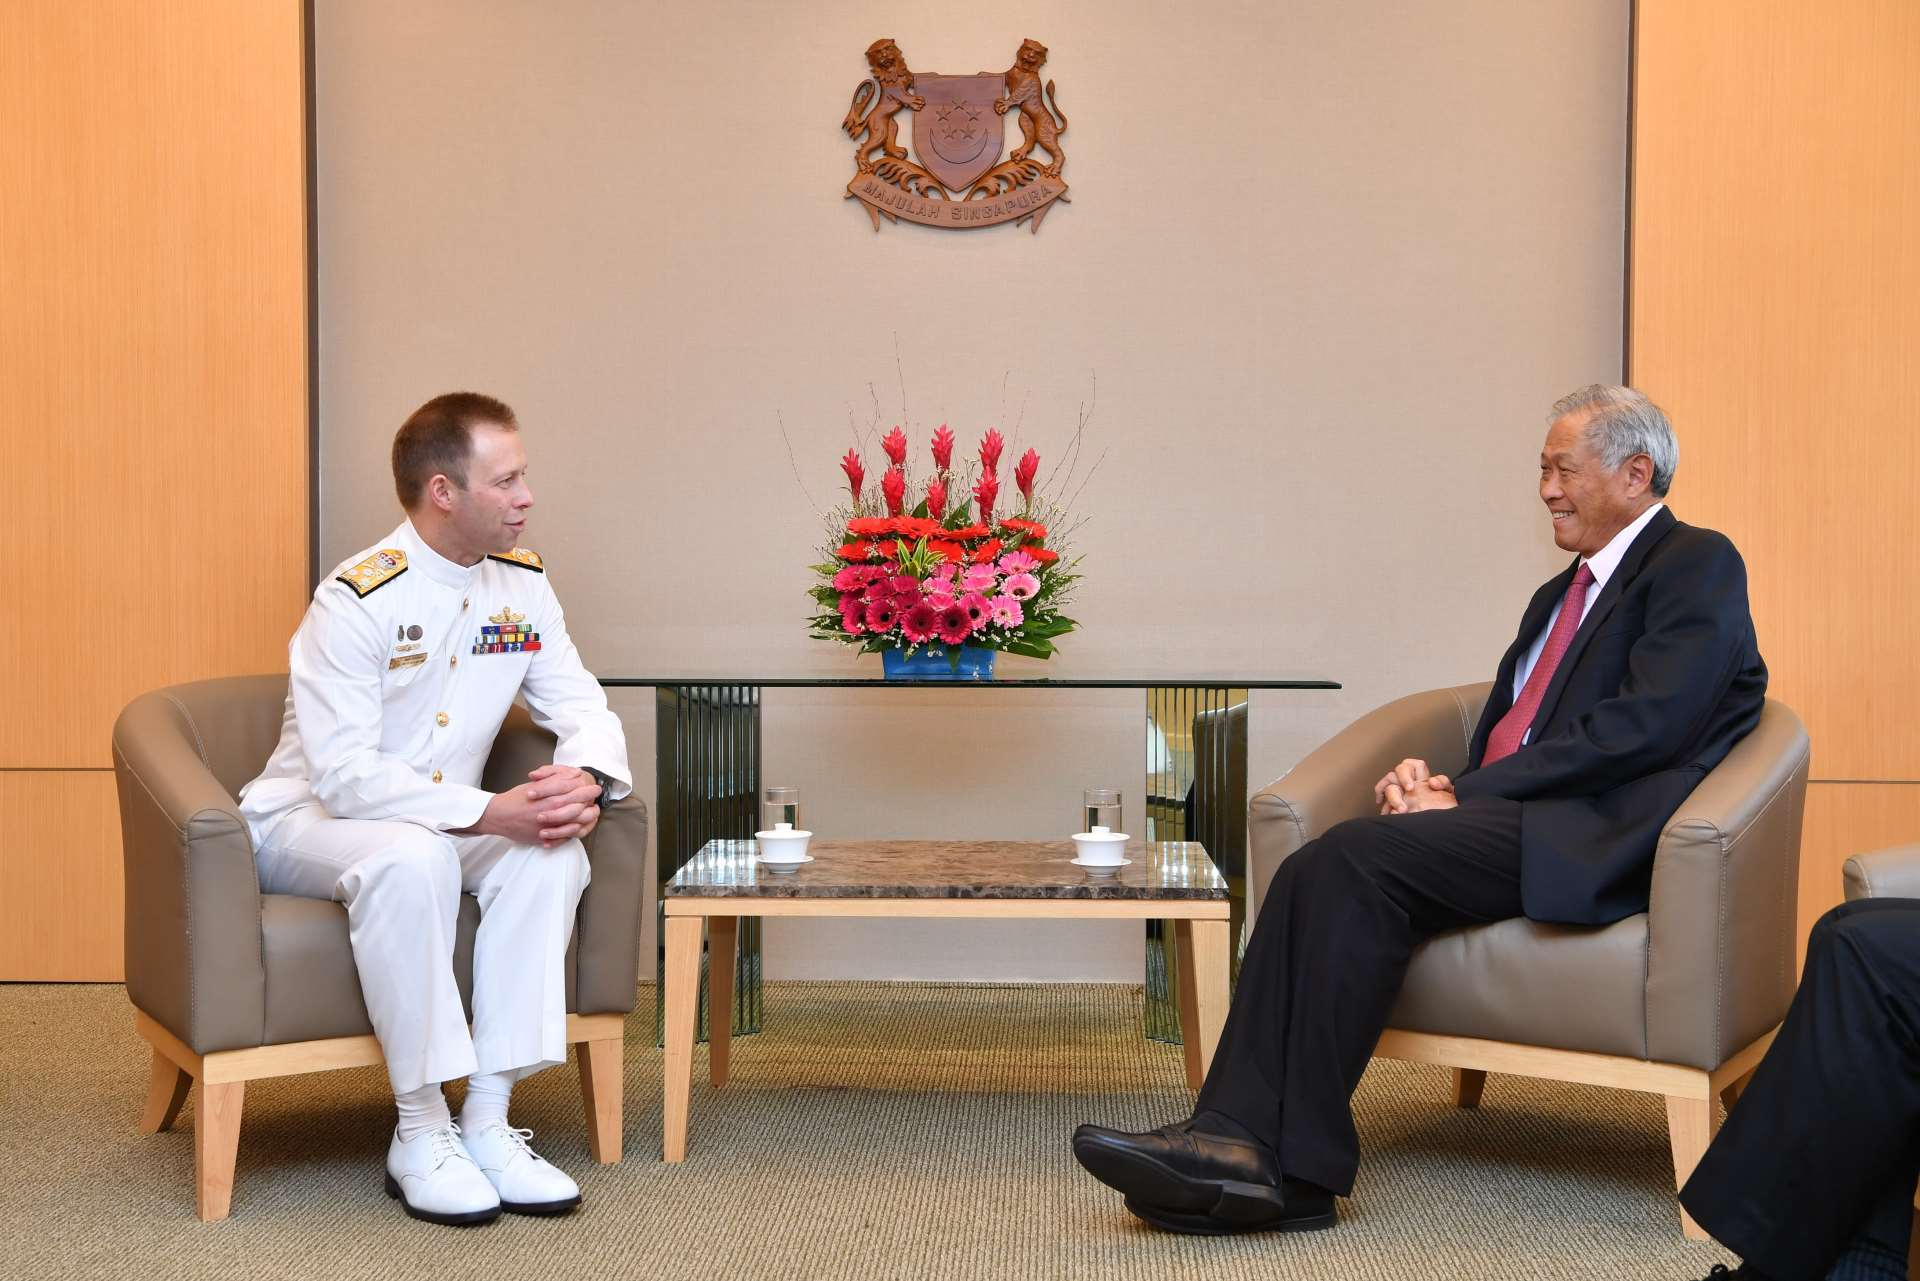 Chief of the Australian Royal Navy Vice Admiral (VADM) Michael Noonan (left) calling on Minister for Defence Dr Ng Eng Hen (right).